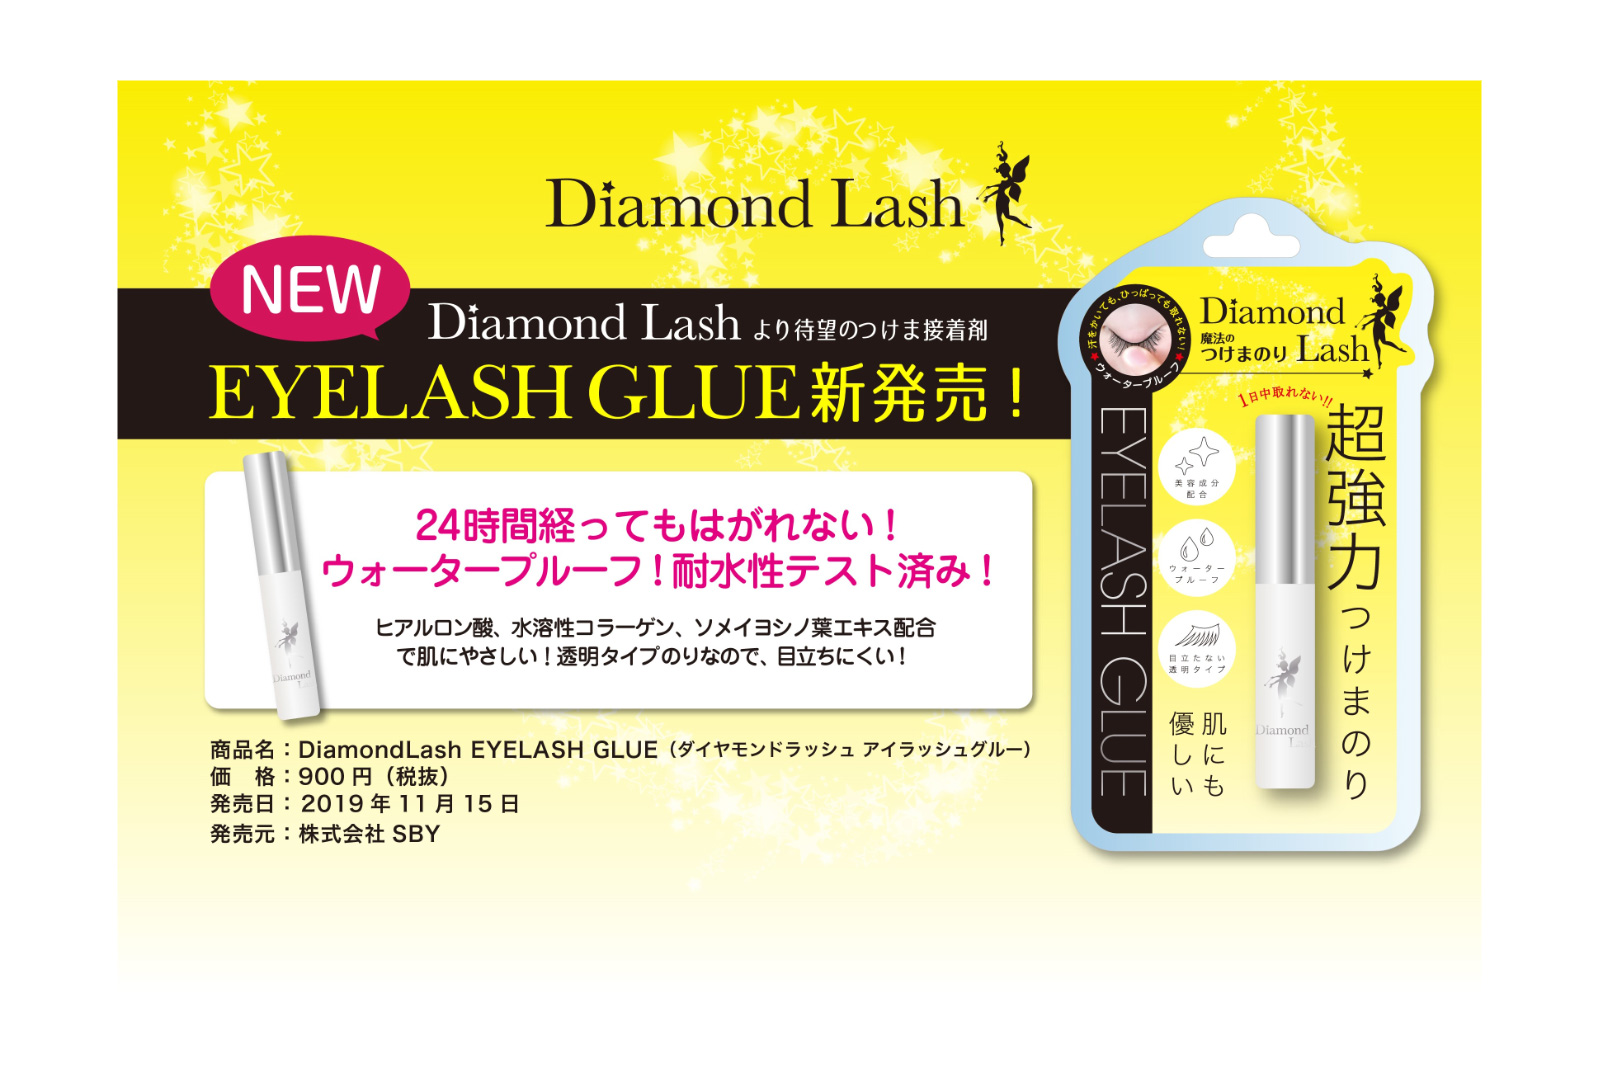 Diamond Lash EYELASH GLUE